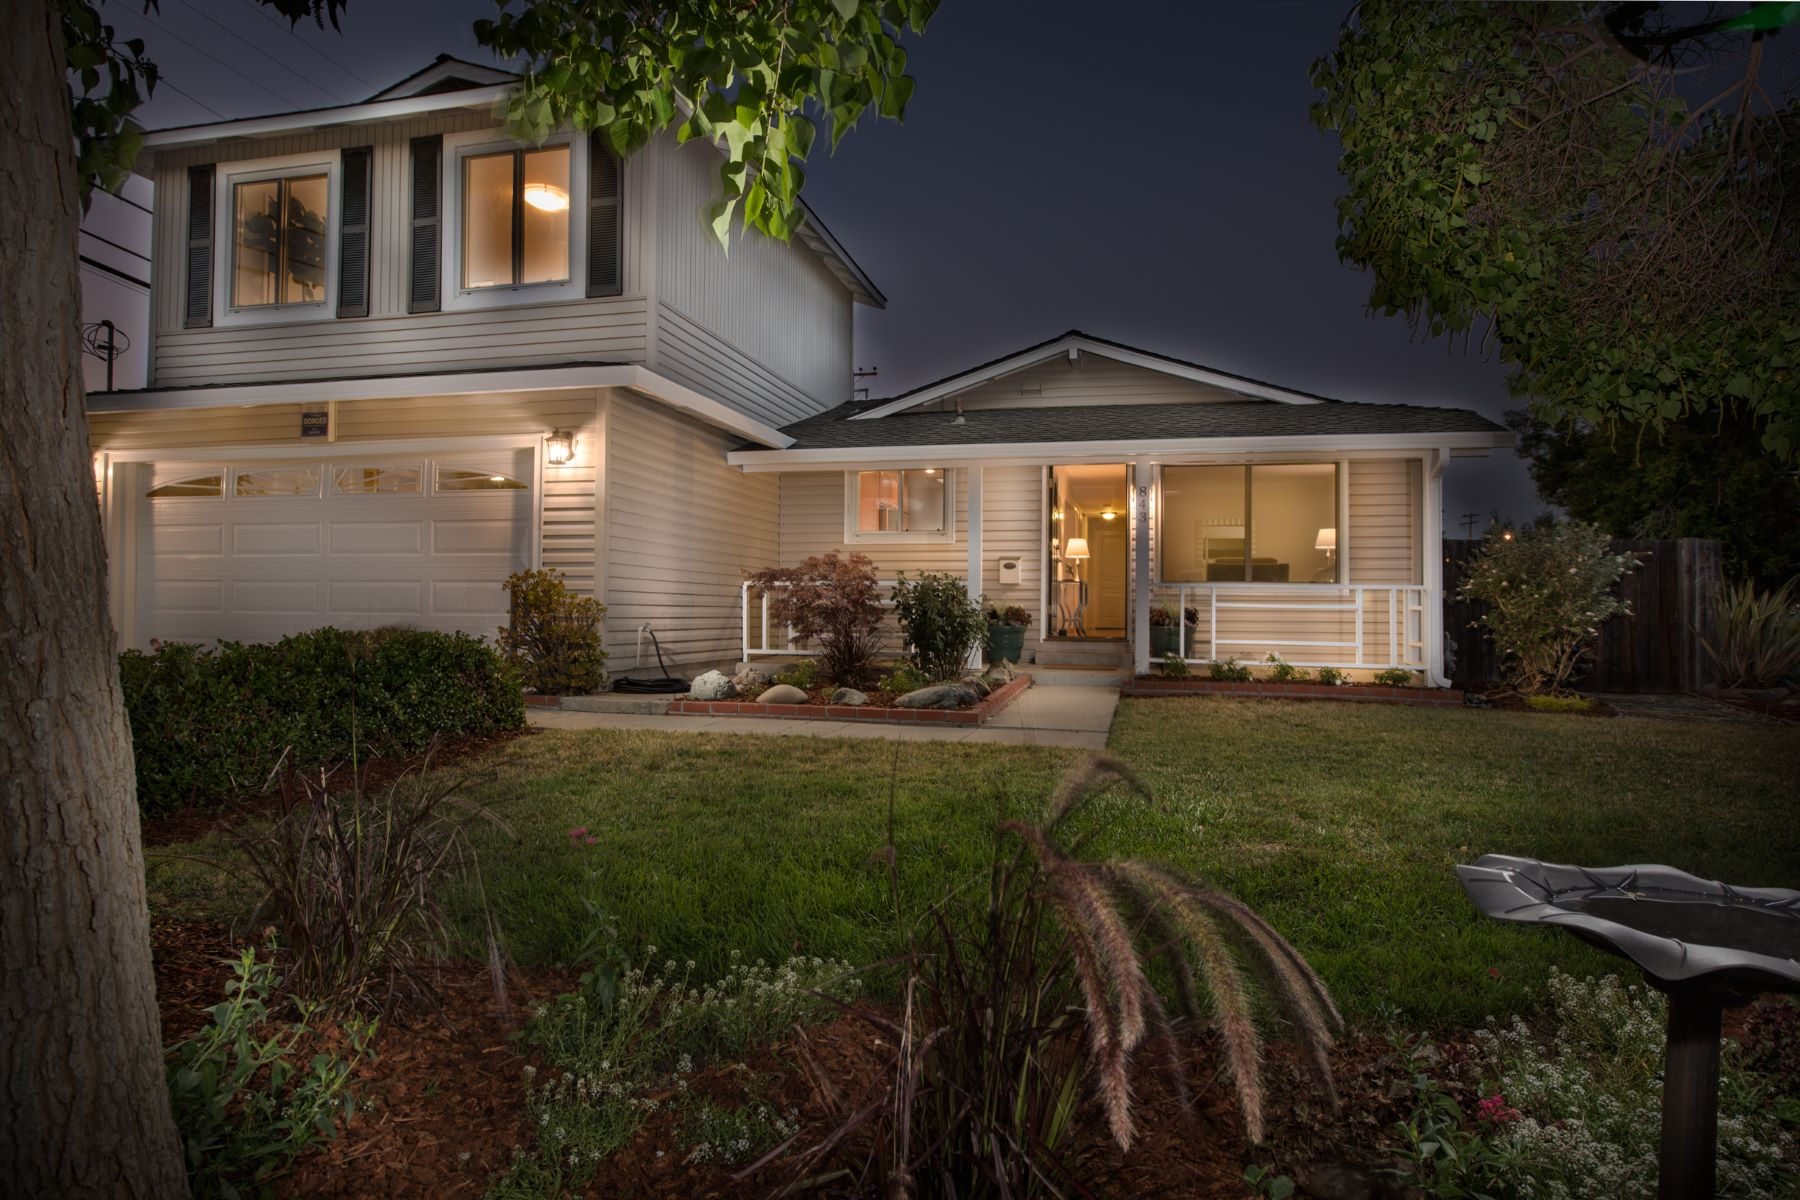 Single Family Home for Sale at 843 Laurie 843 Laurie Avenue Santa Clara, California, 95054 United States